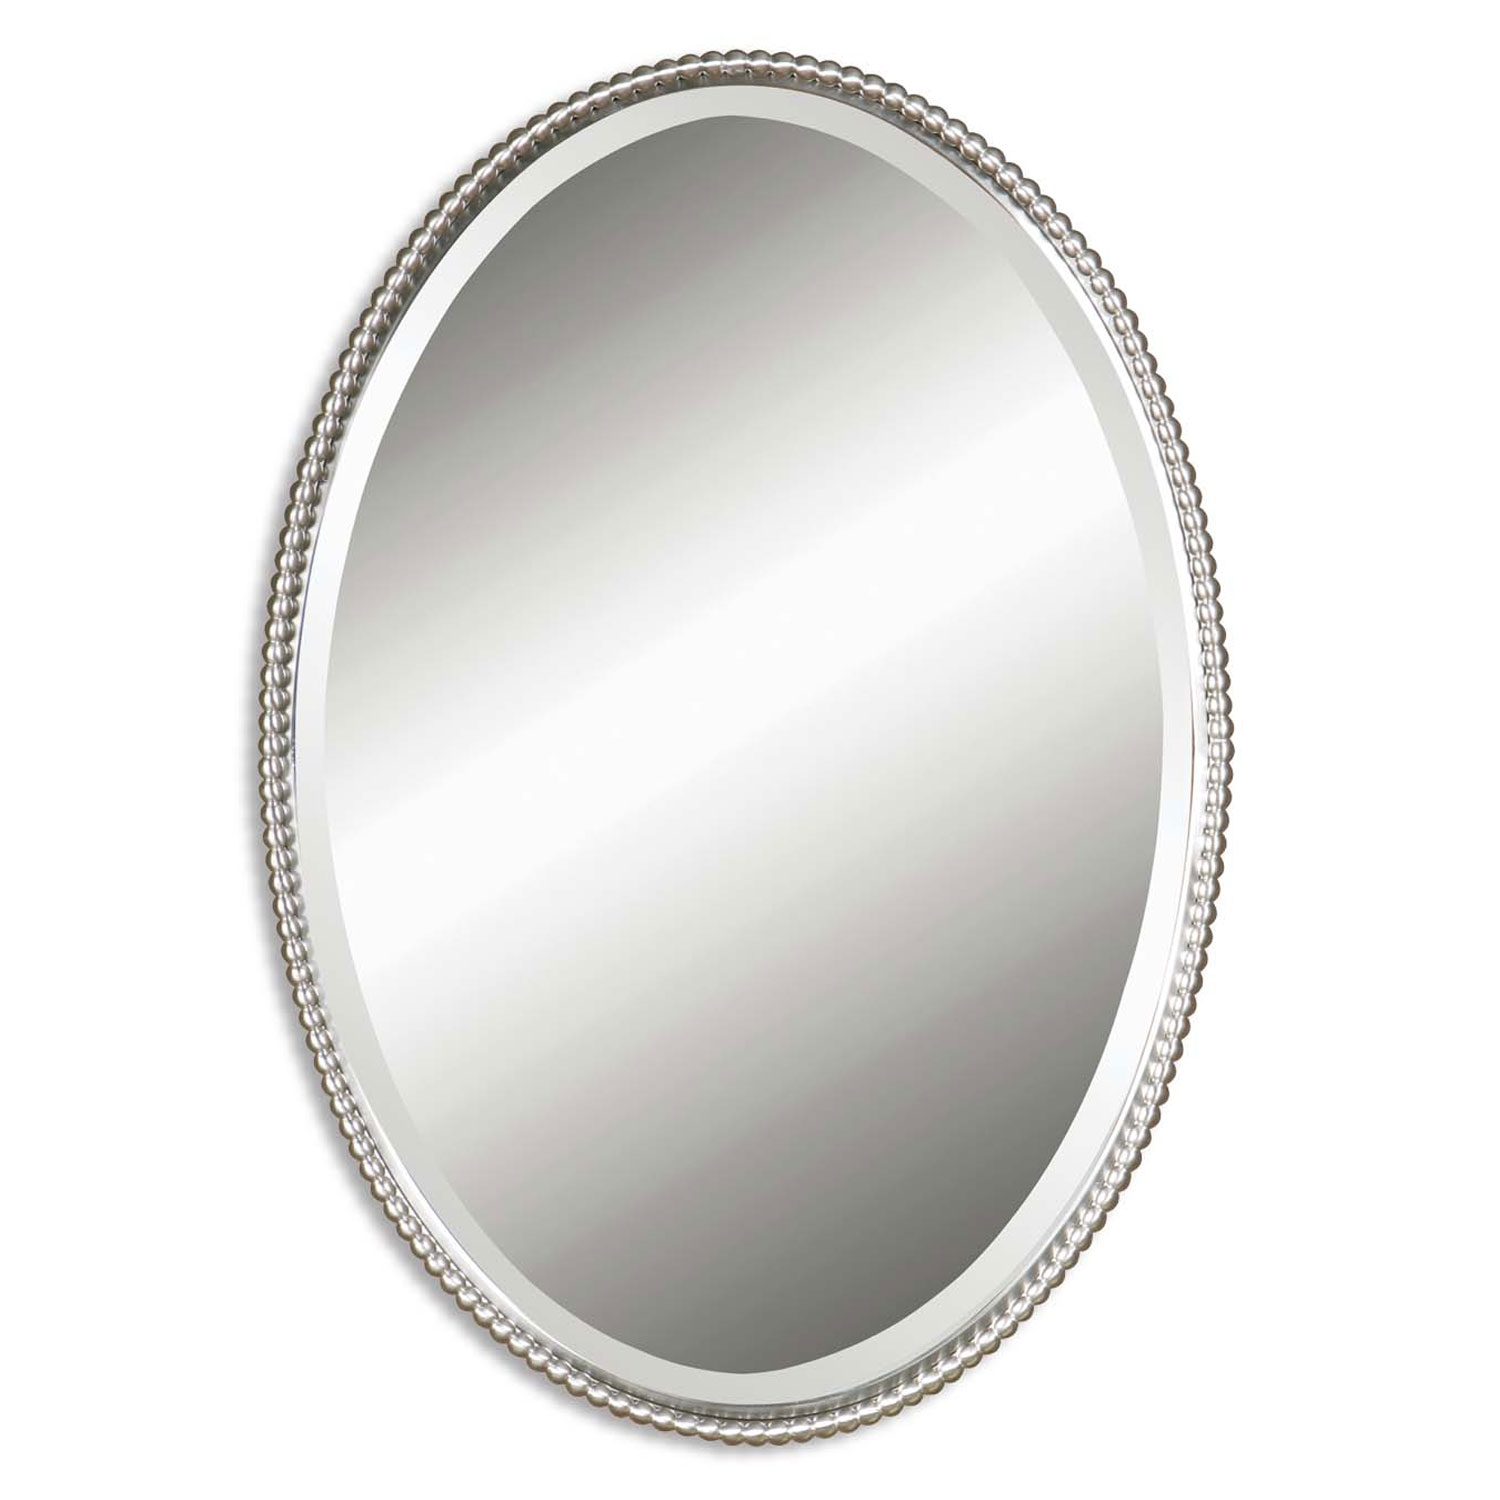 Wall Mirrors Bathroom Mirrors Bellacor For White Oval Mirror (Image 12 of 15)